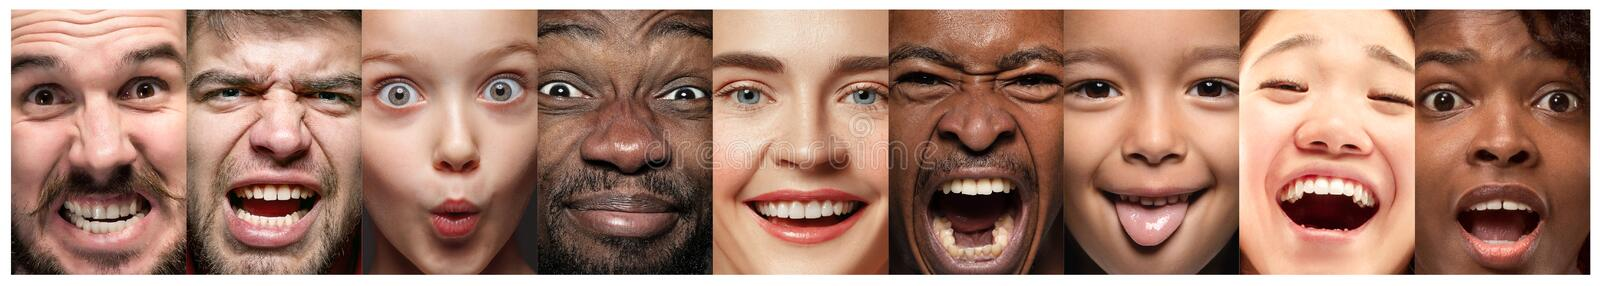 Close up portrait of young people full of expression stock photos